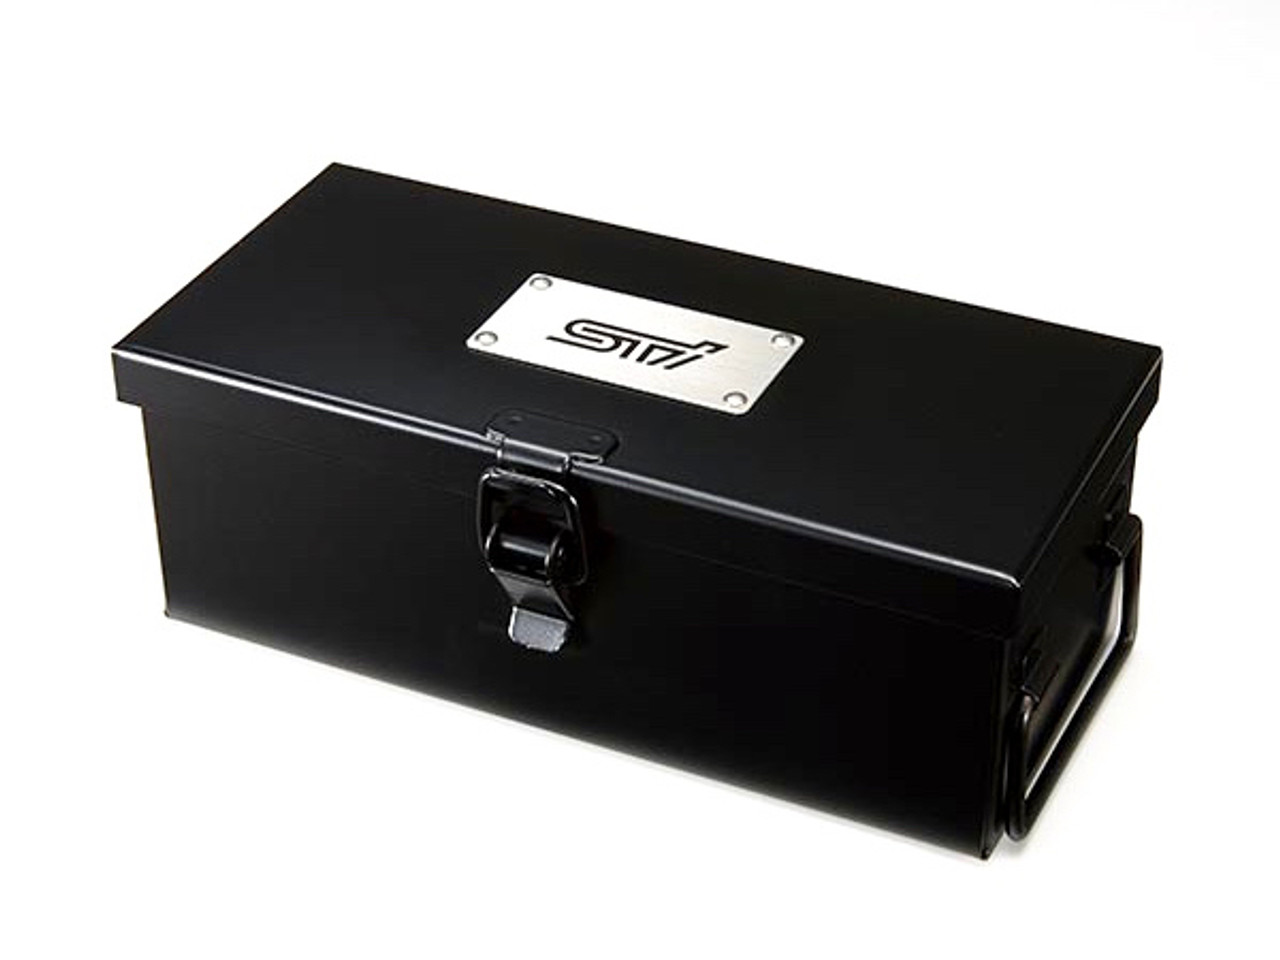 STI Steel Storage Box Medium STSG18100230 at AVOJDM.com